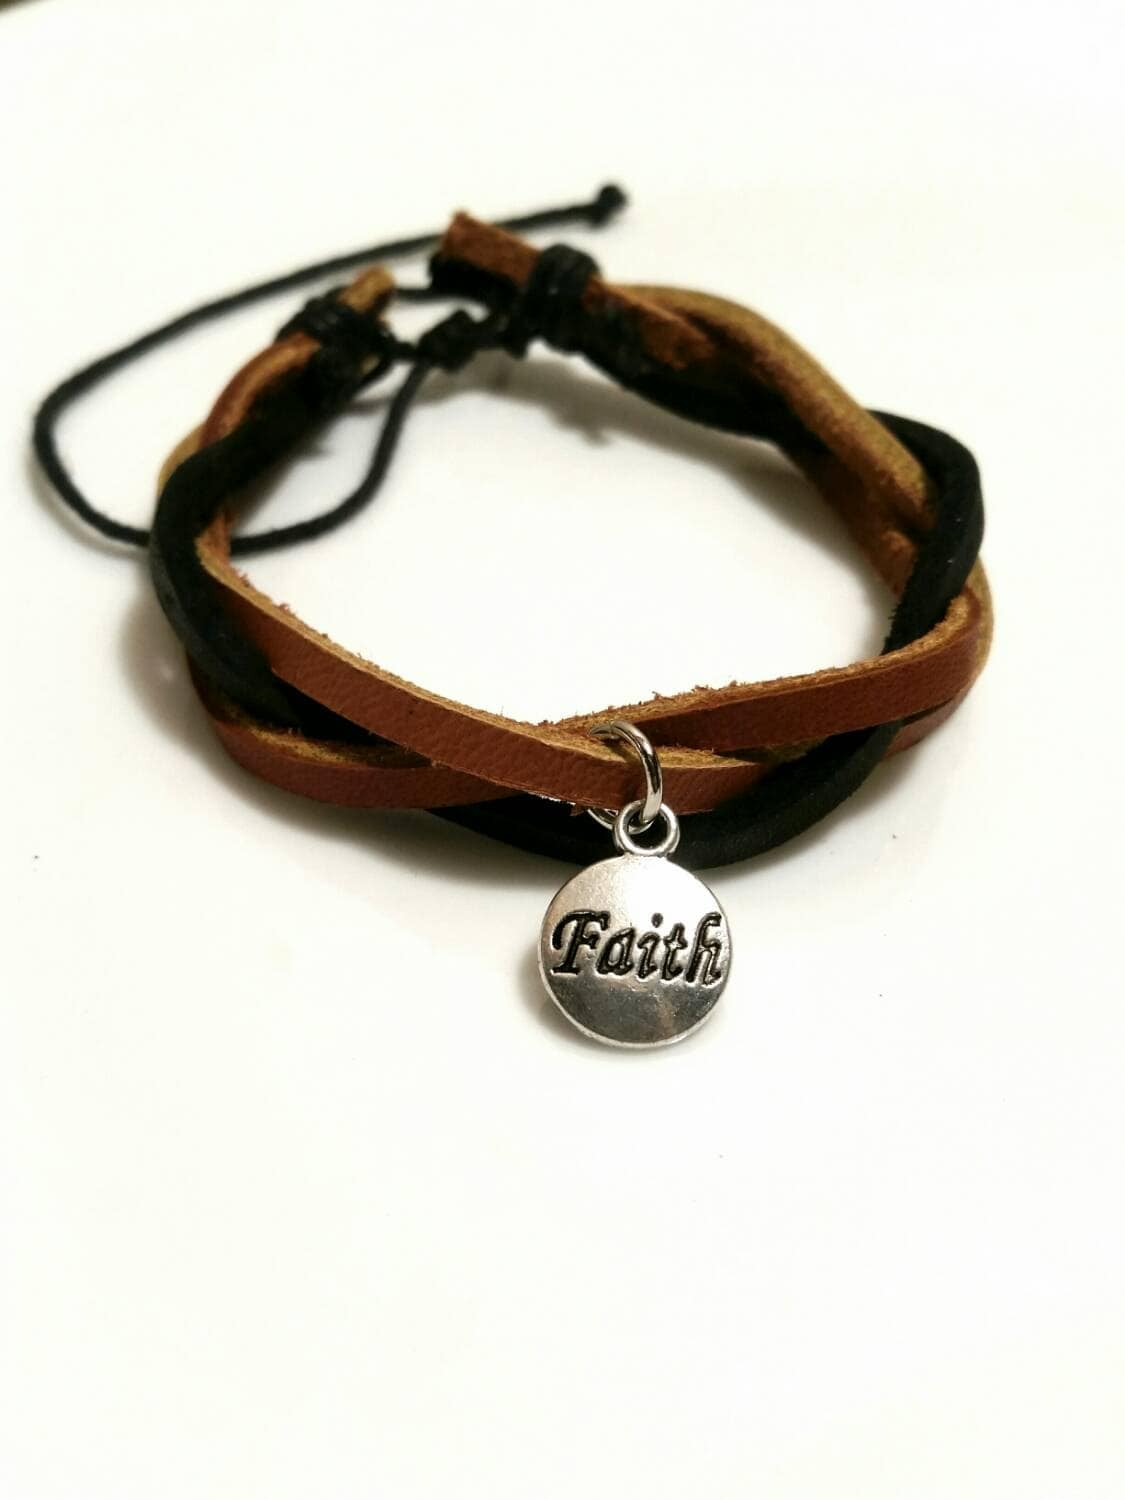 Faith Bracelet Inspirational Jewelry Christian Gifts Leather